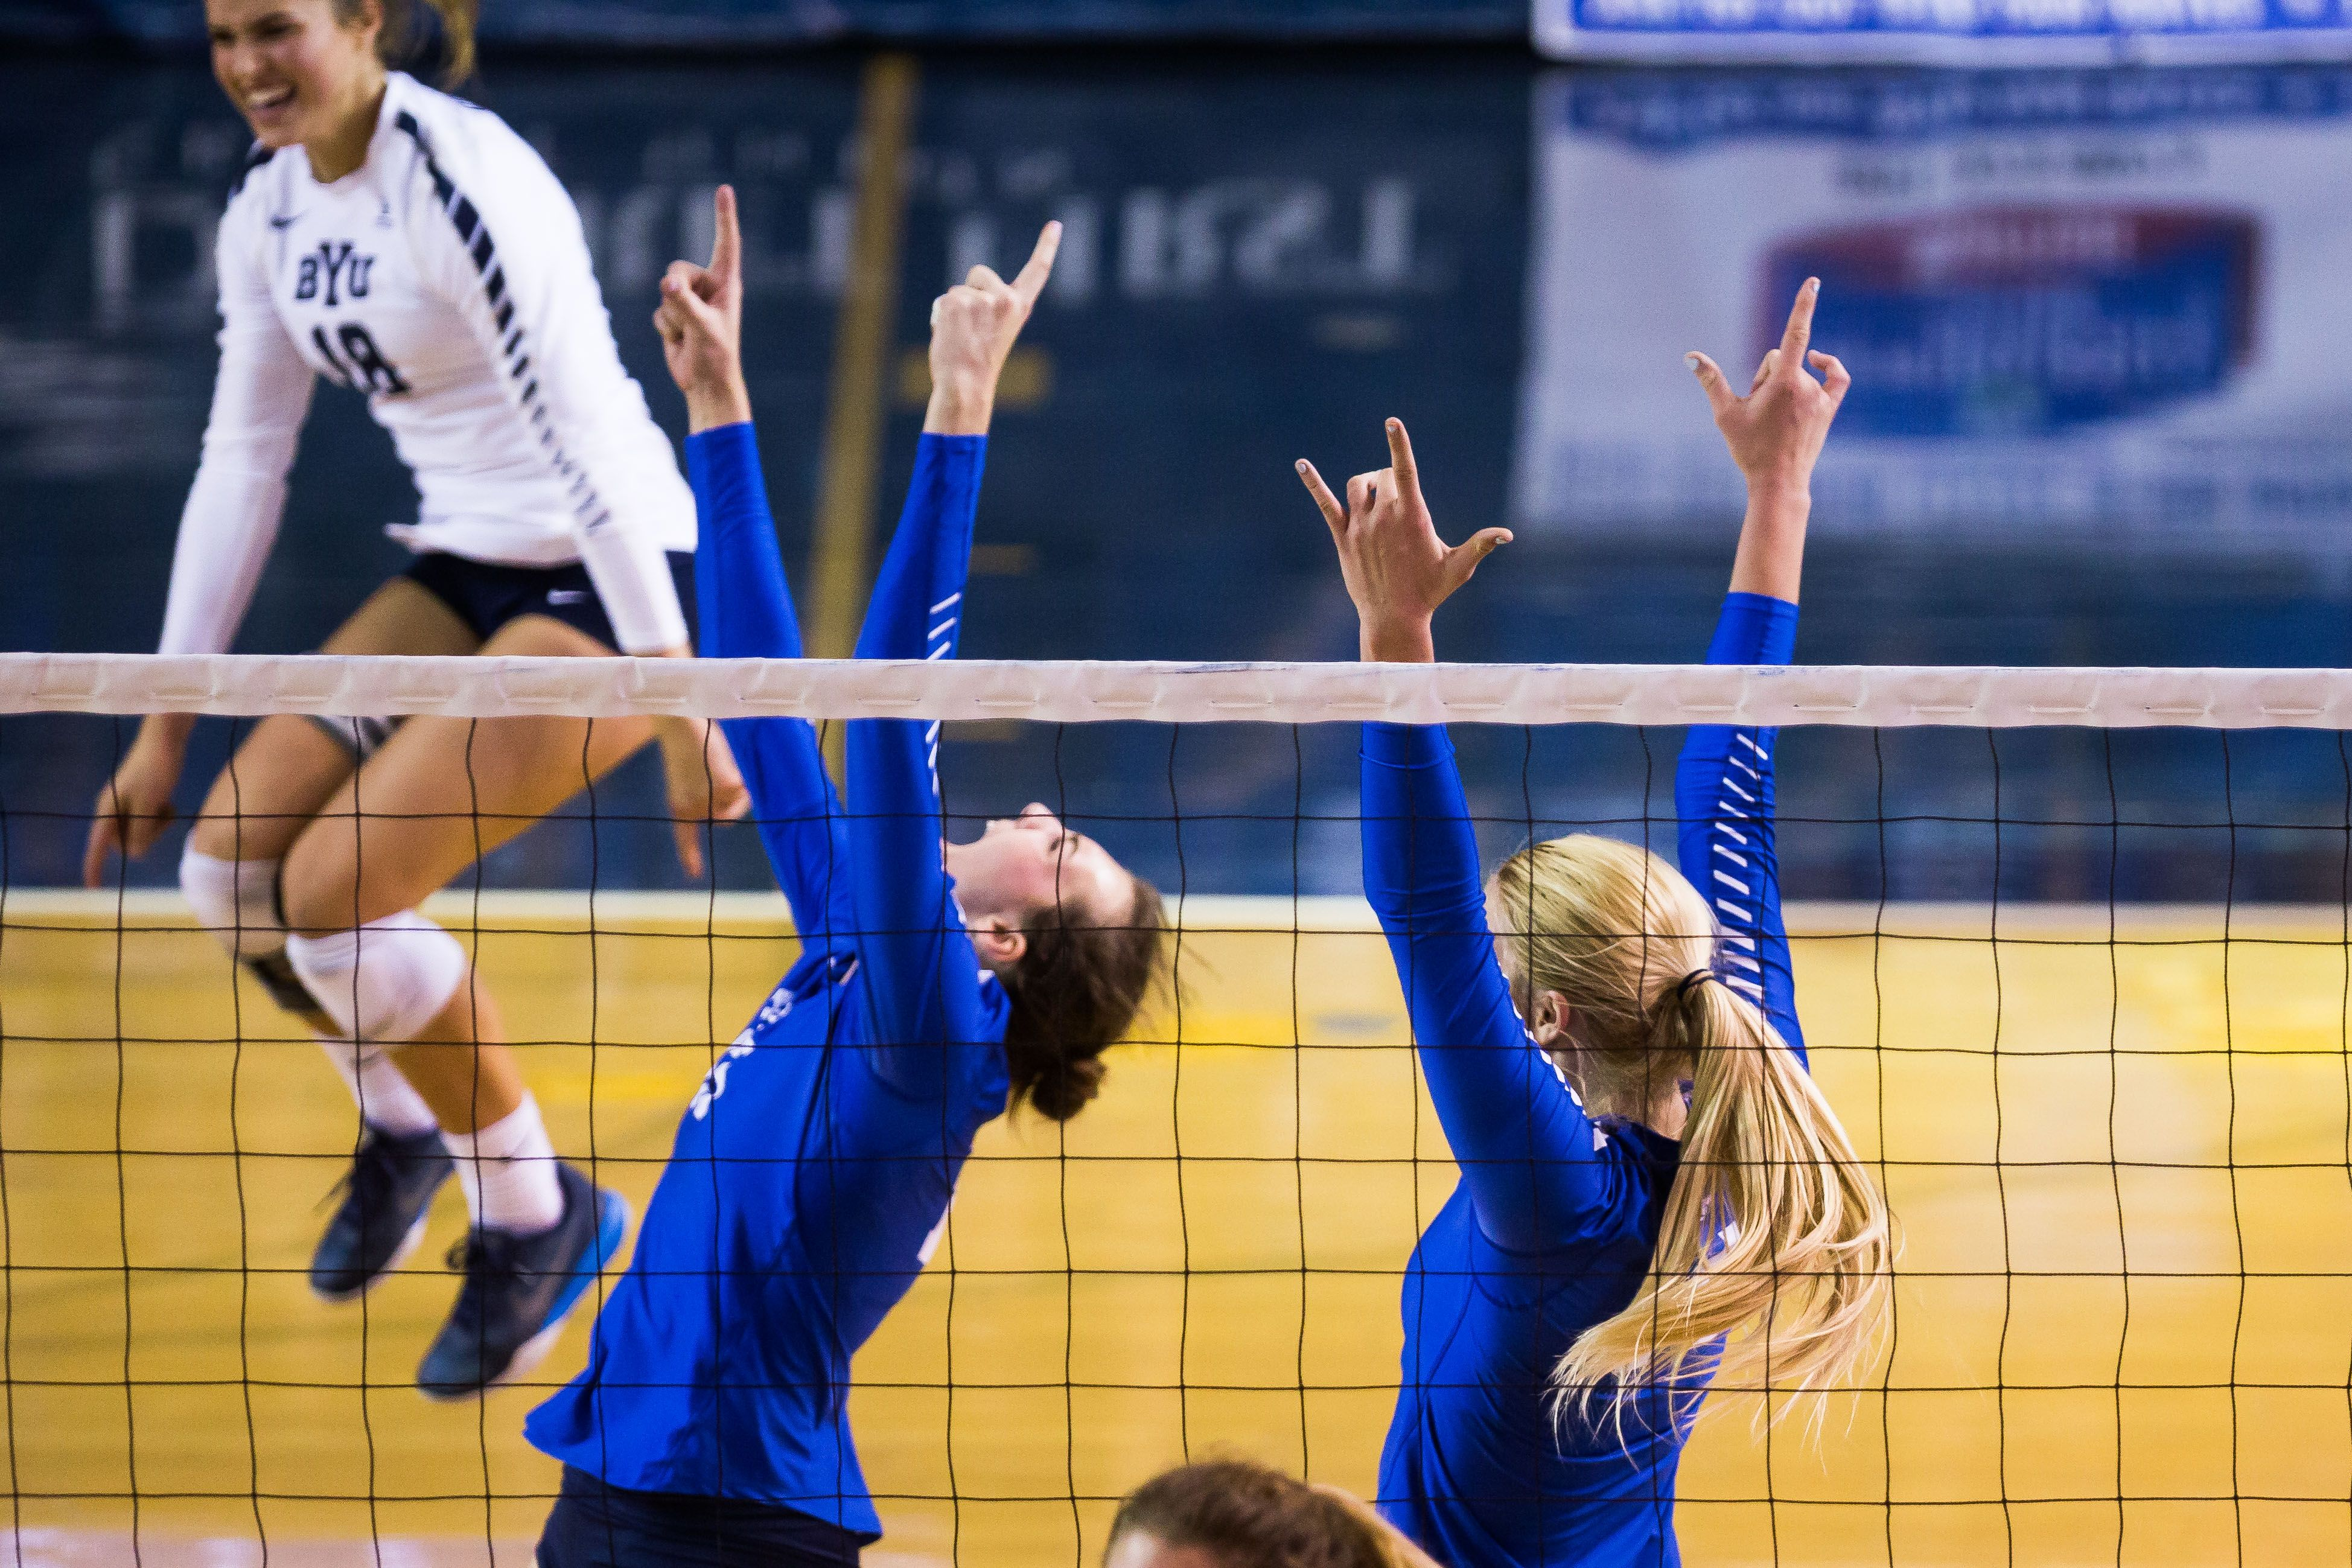 No 13 Byu Women S Volleyball Opens Wcc Play With Win The Daily Universe Women Volleyball Volleyball Byu